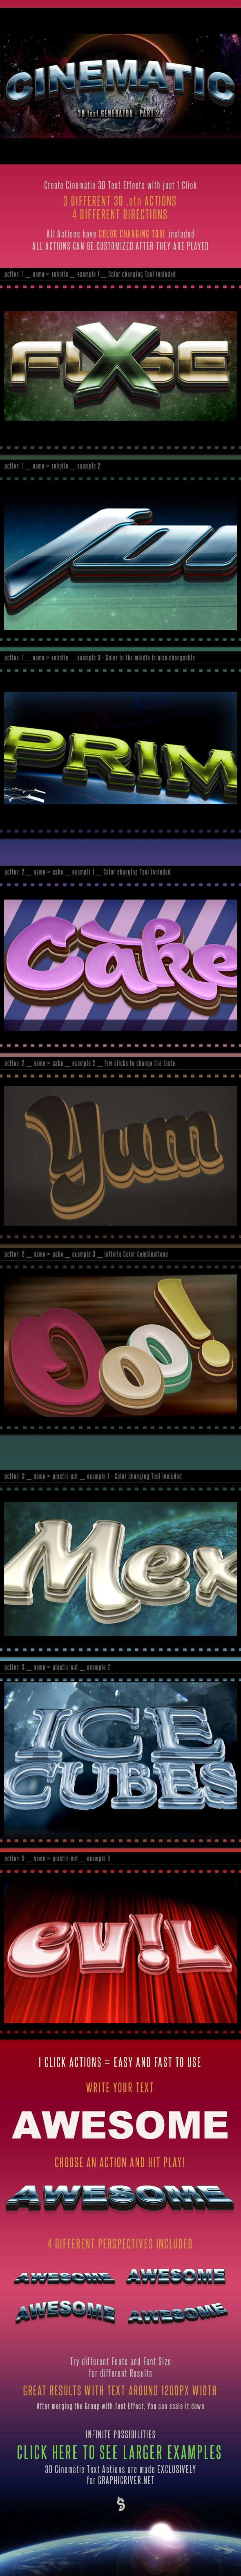 3D Cinematic Text Generator 2 - Actions #three dimensional • Available here → http://graphicriver.net/item/3d-cinematic-text-generator-2-actions/6804573?s_rank=65&ref=pxcr